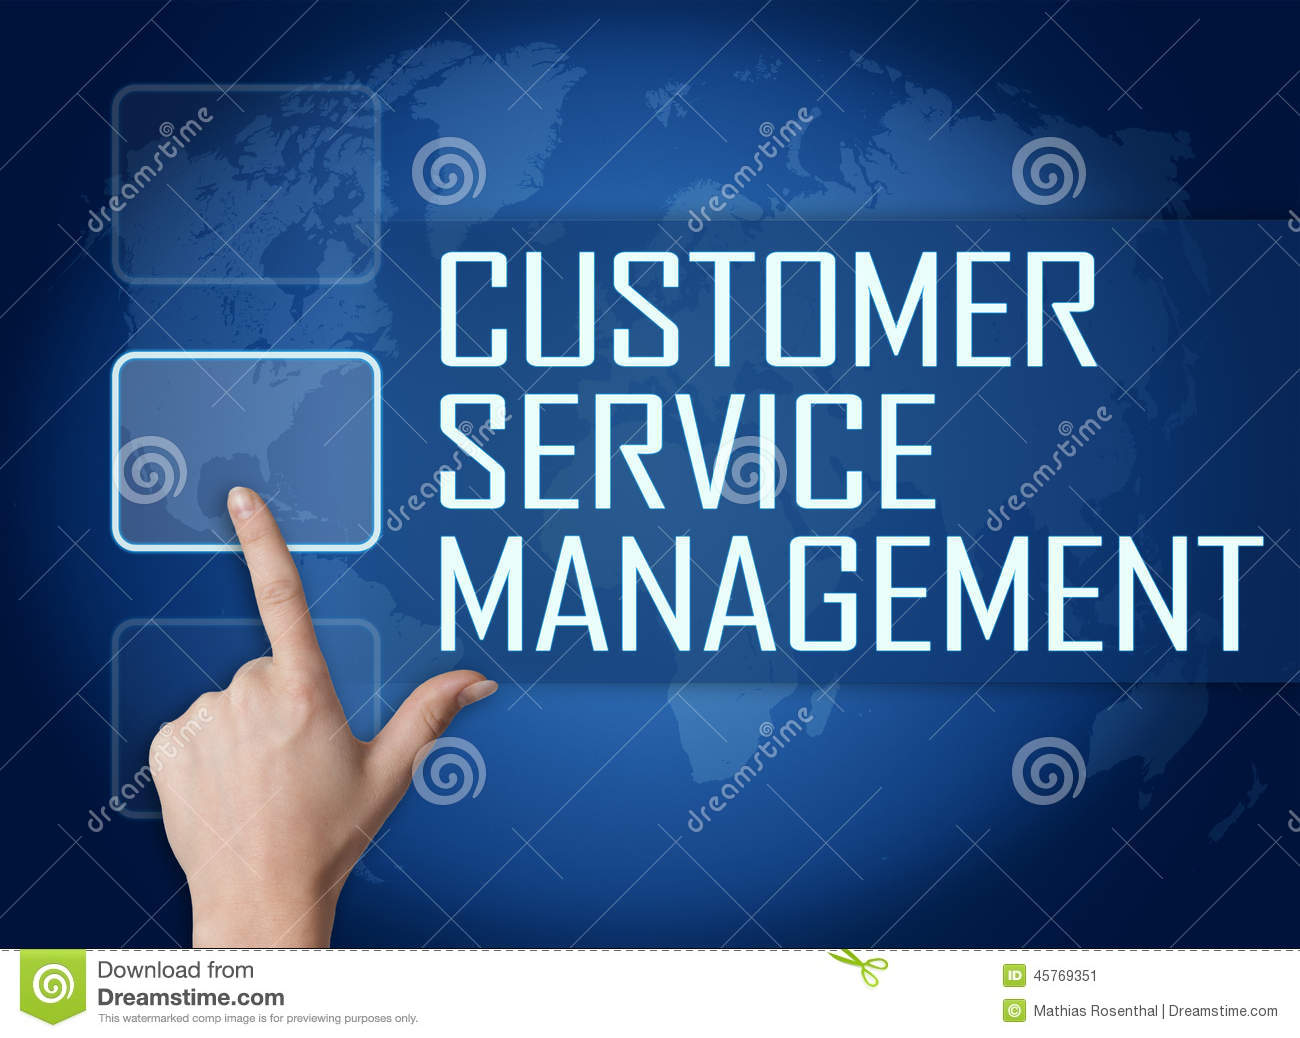 Customer service management essay